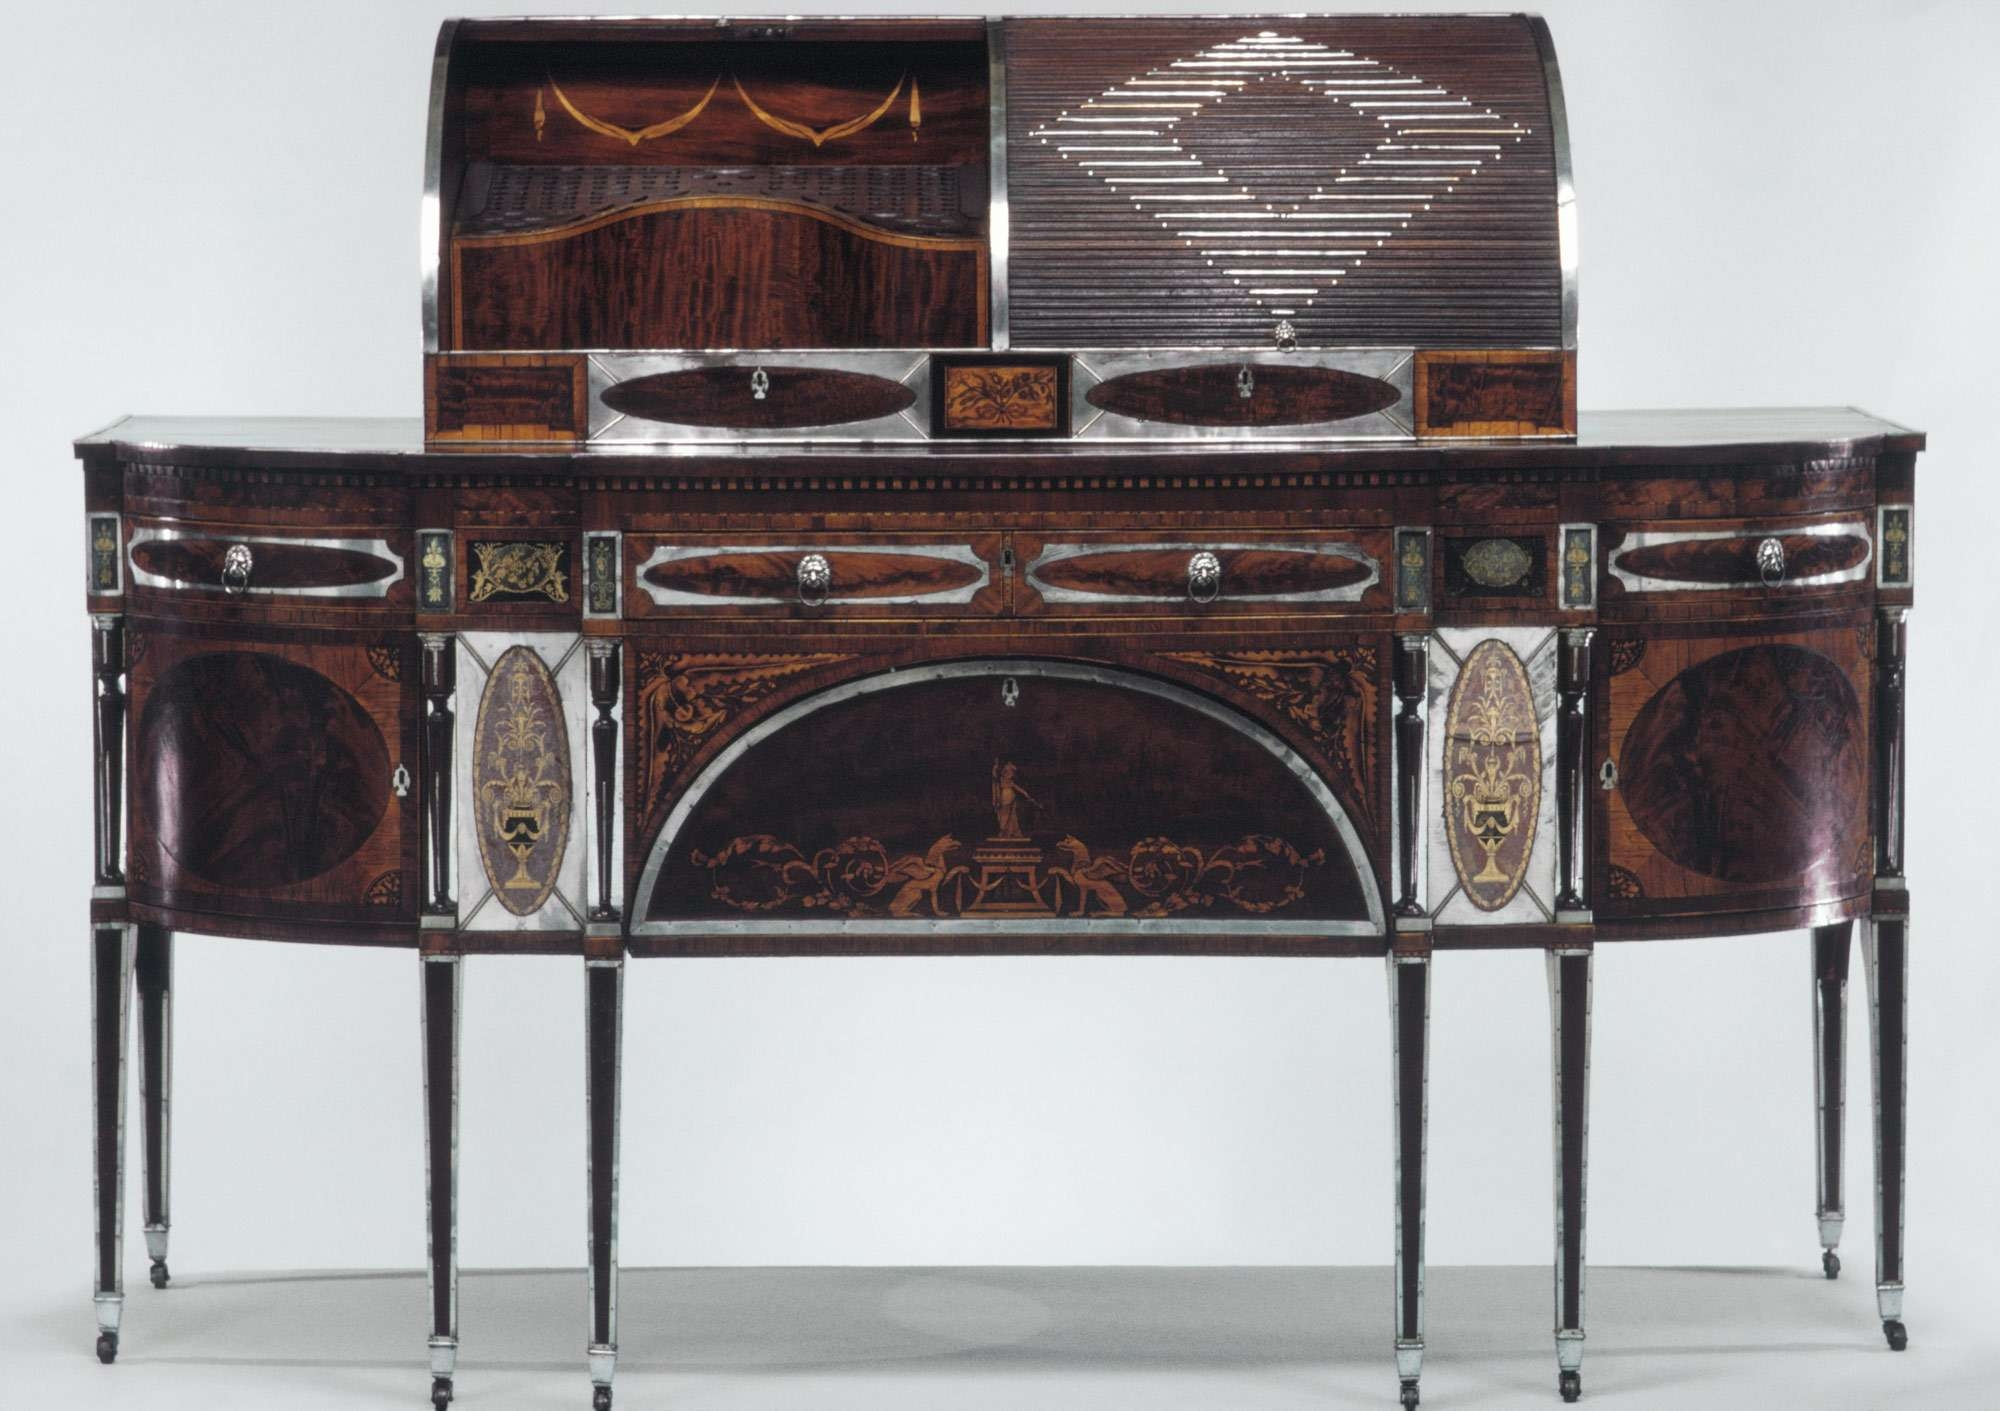 Sideboard | Work Of Art | Heilbrunn Timeline Of Art History | The Intended For White Pine Sideboards (View 16 of 20)